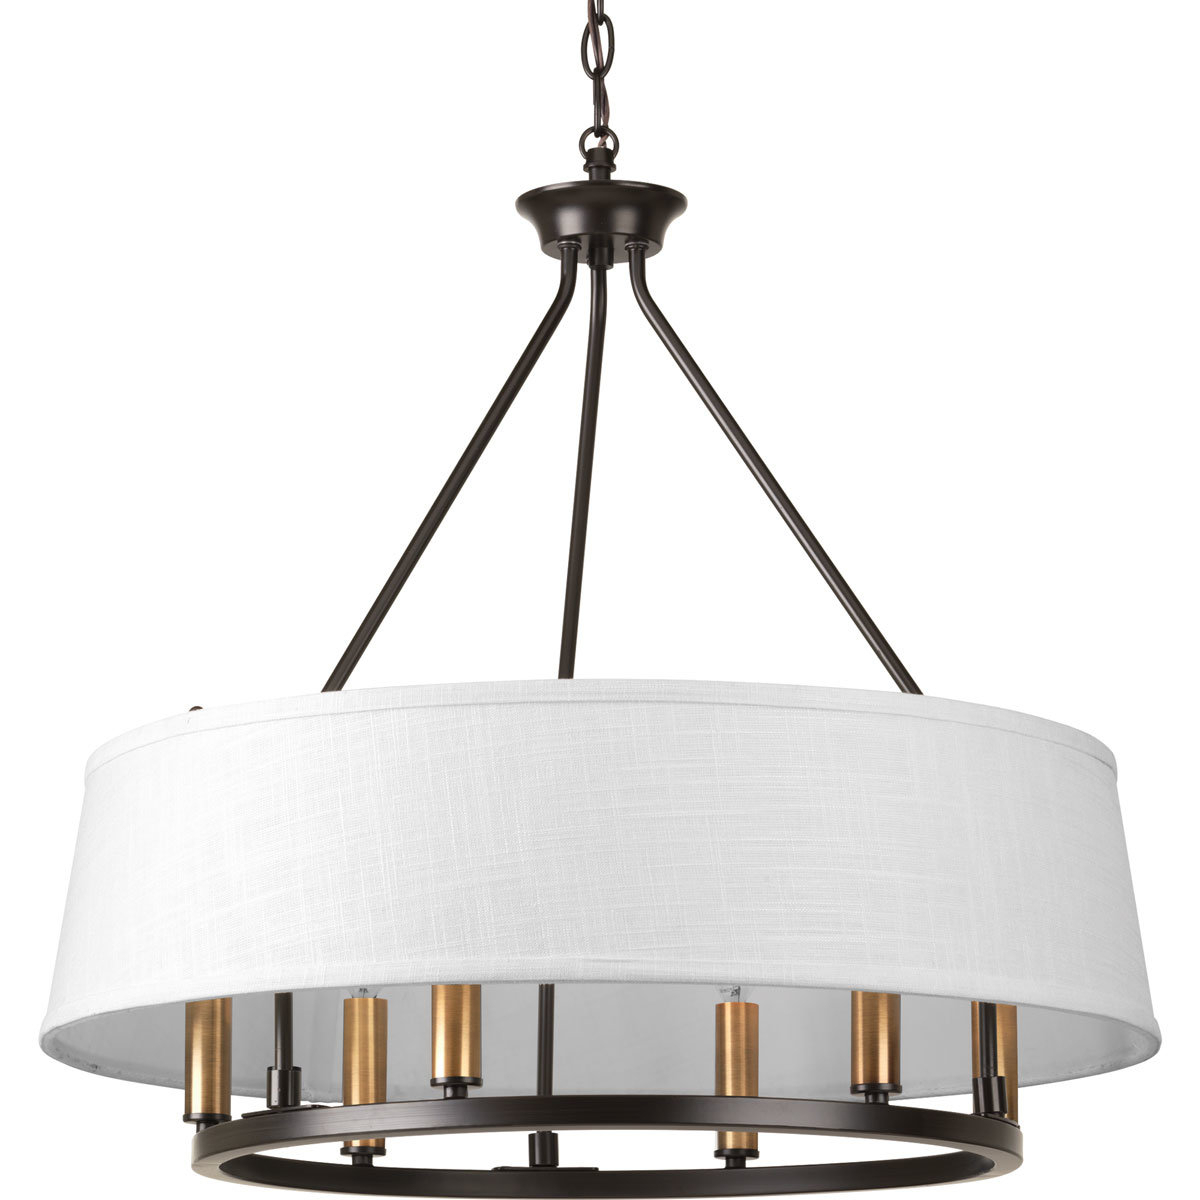 Hughett 6 Light Drum Chandelier For Widely Used Breithaup 4 Light Drum Chandeliers (View 11 of 20)